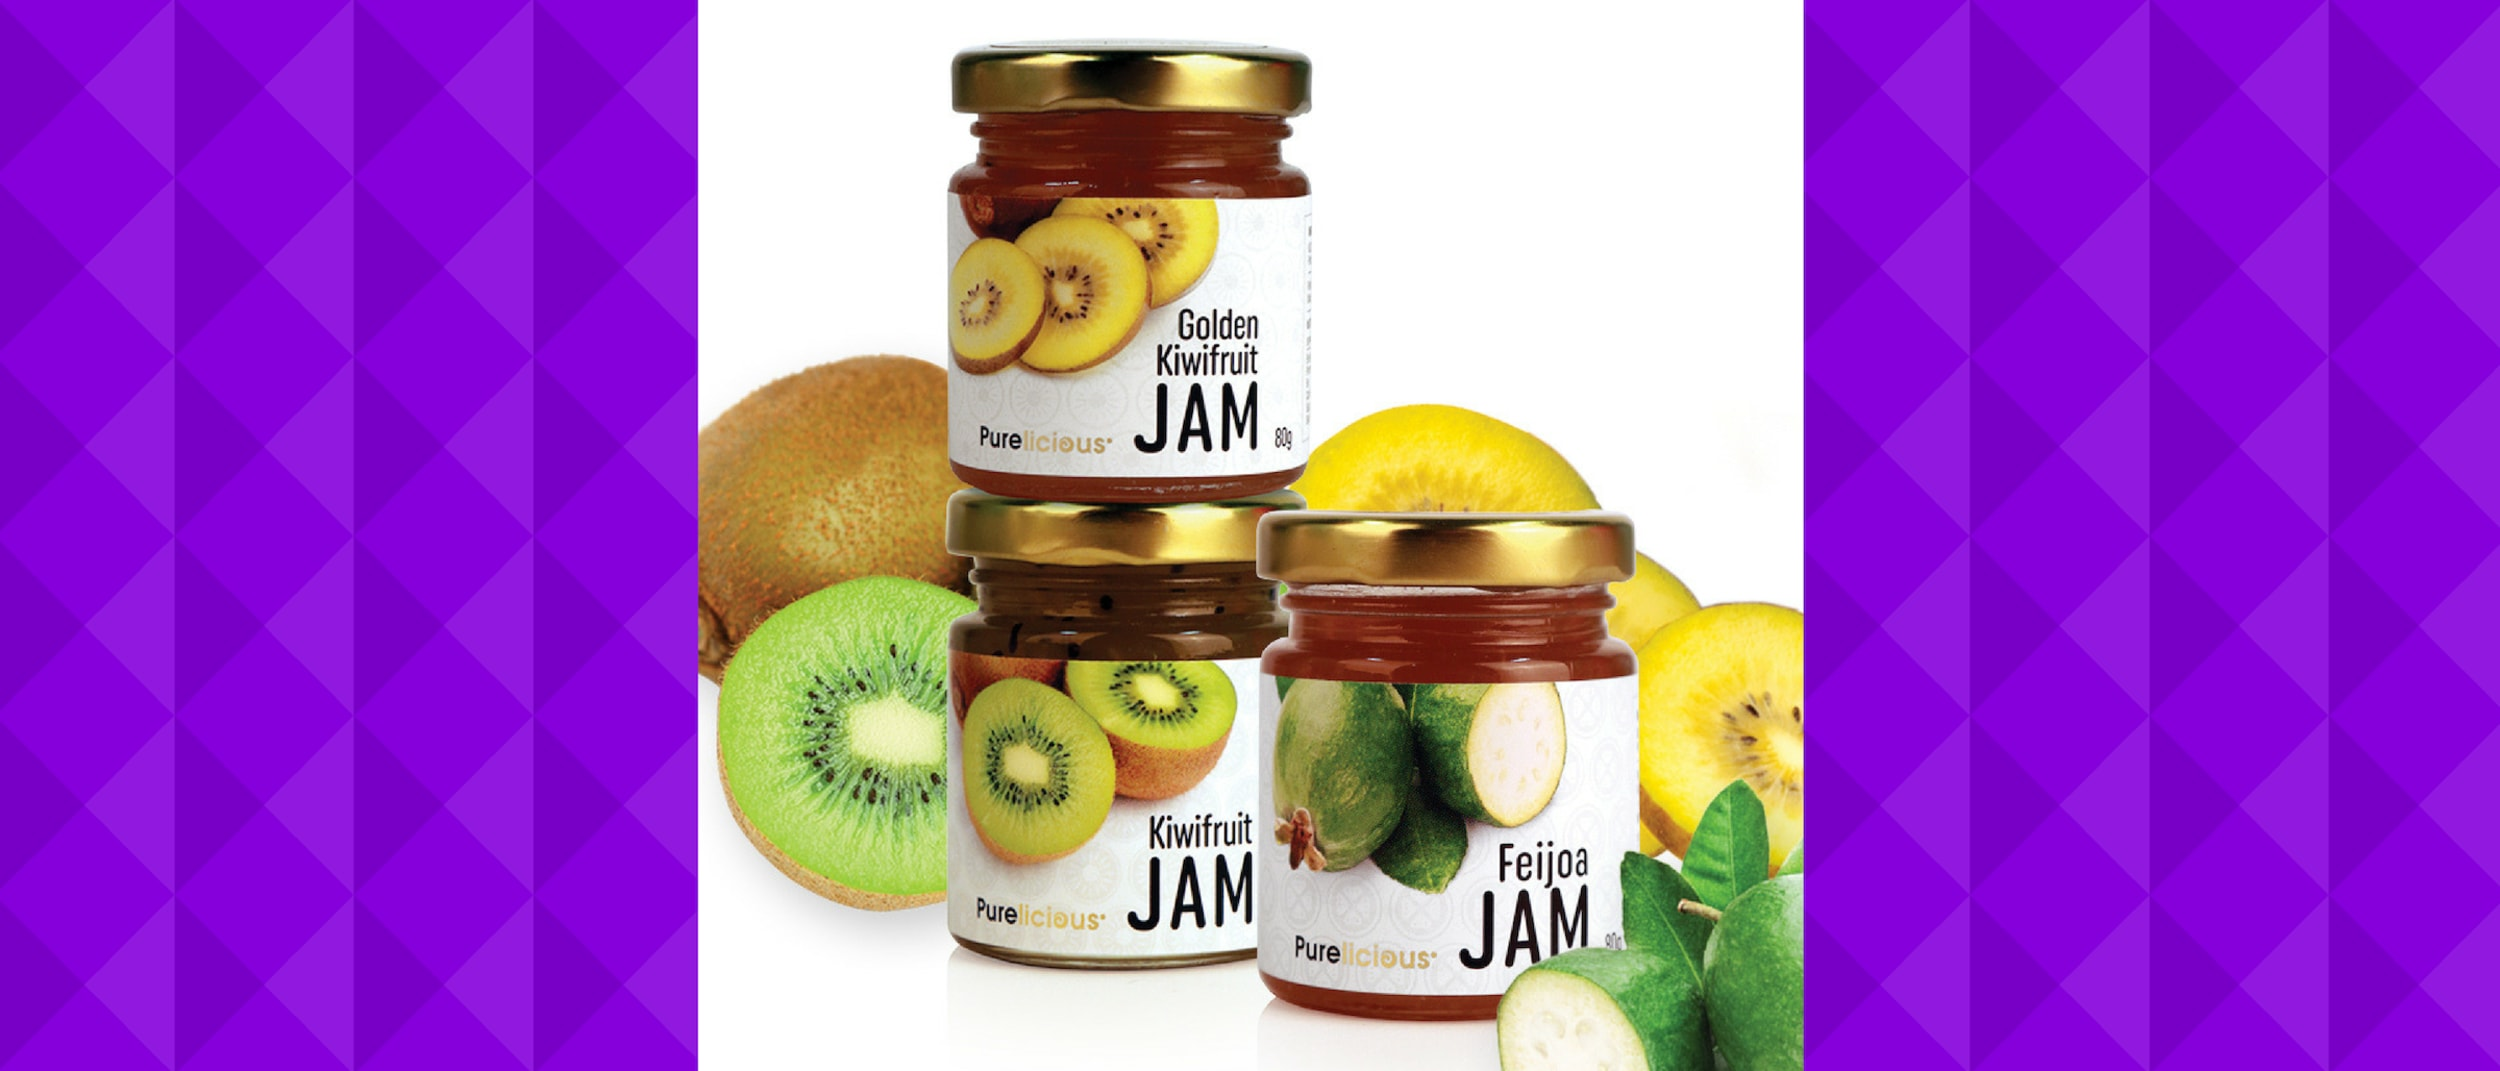 New Zealand The Gift: receive a FREE Purelicious Feijoa Jam*